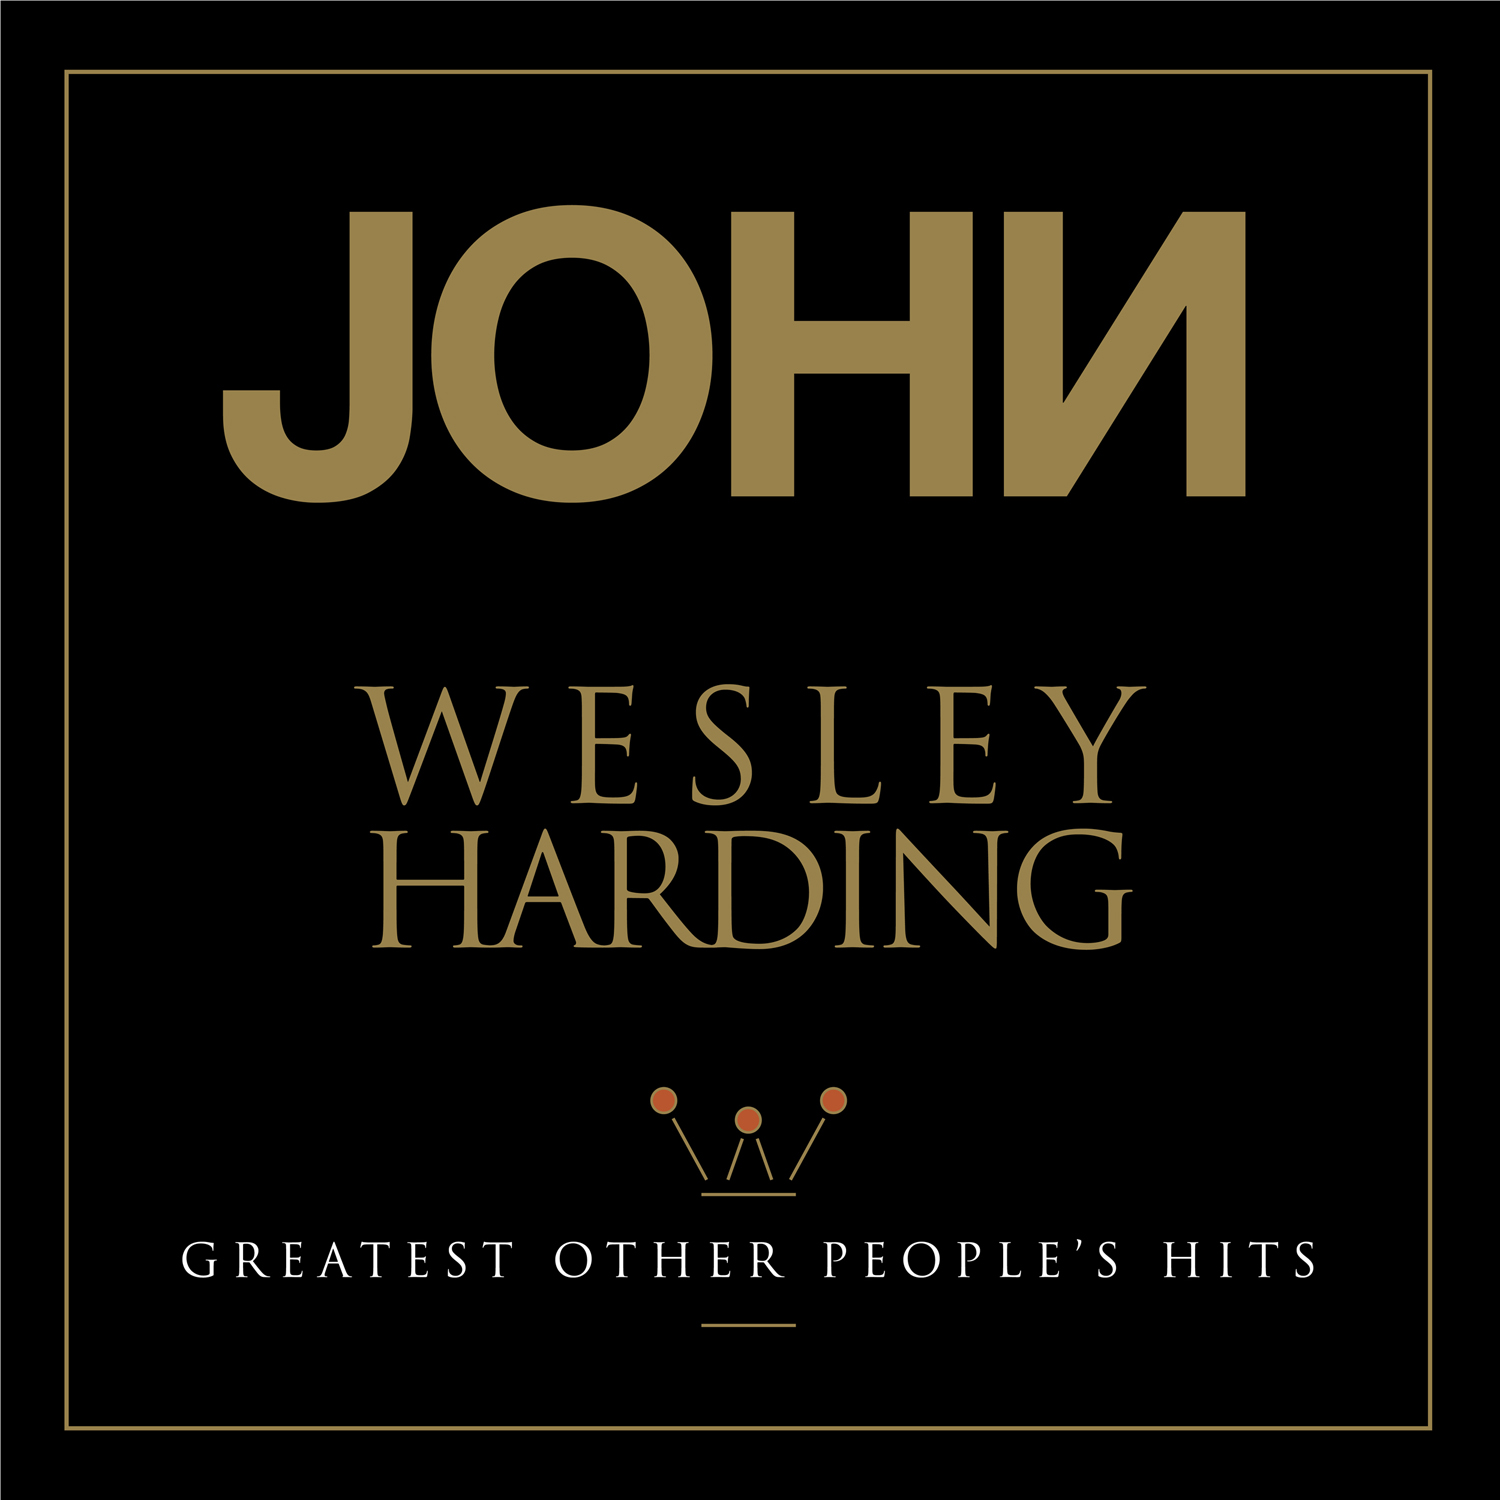 john wesley harding greatest other people s hits omnivore recordings